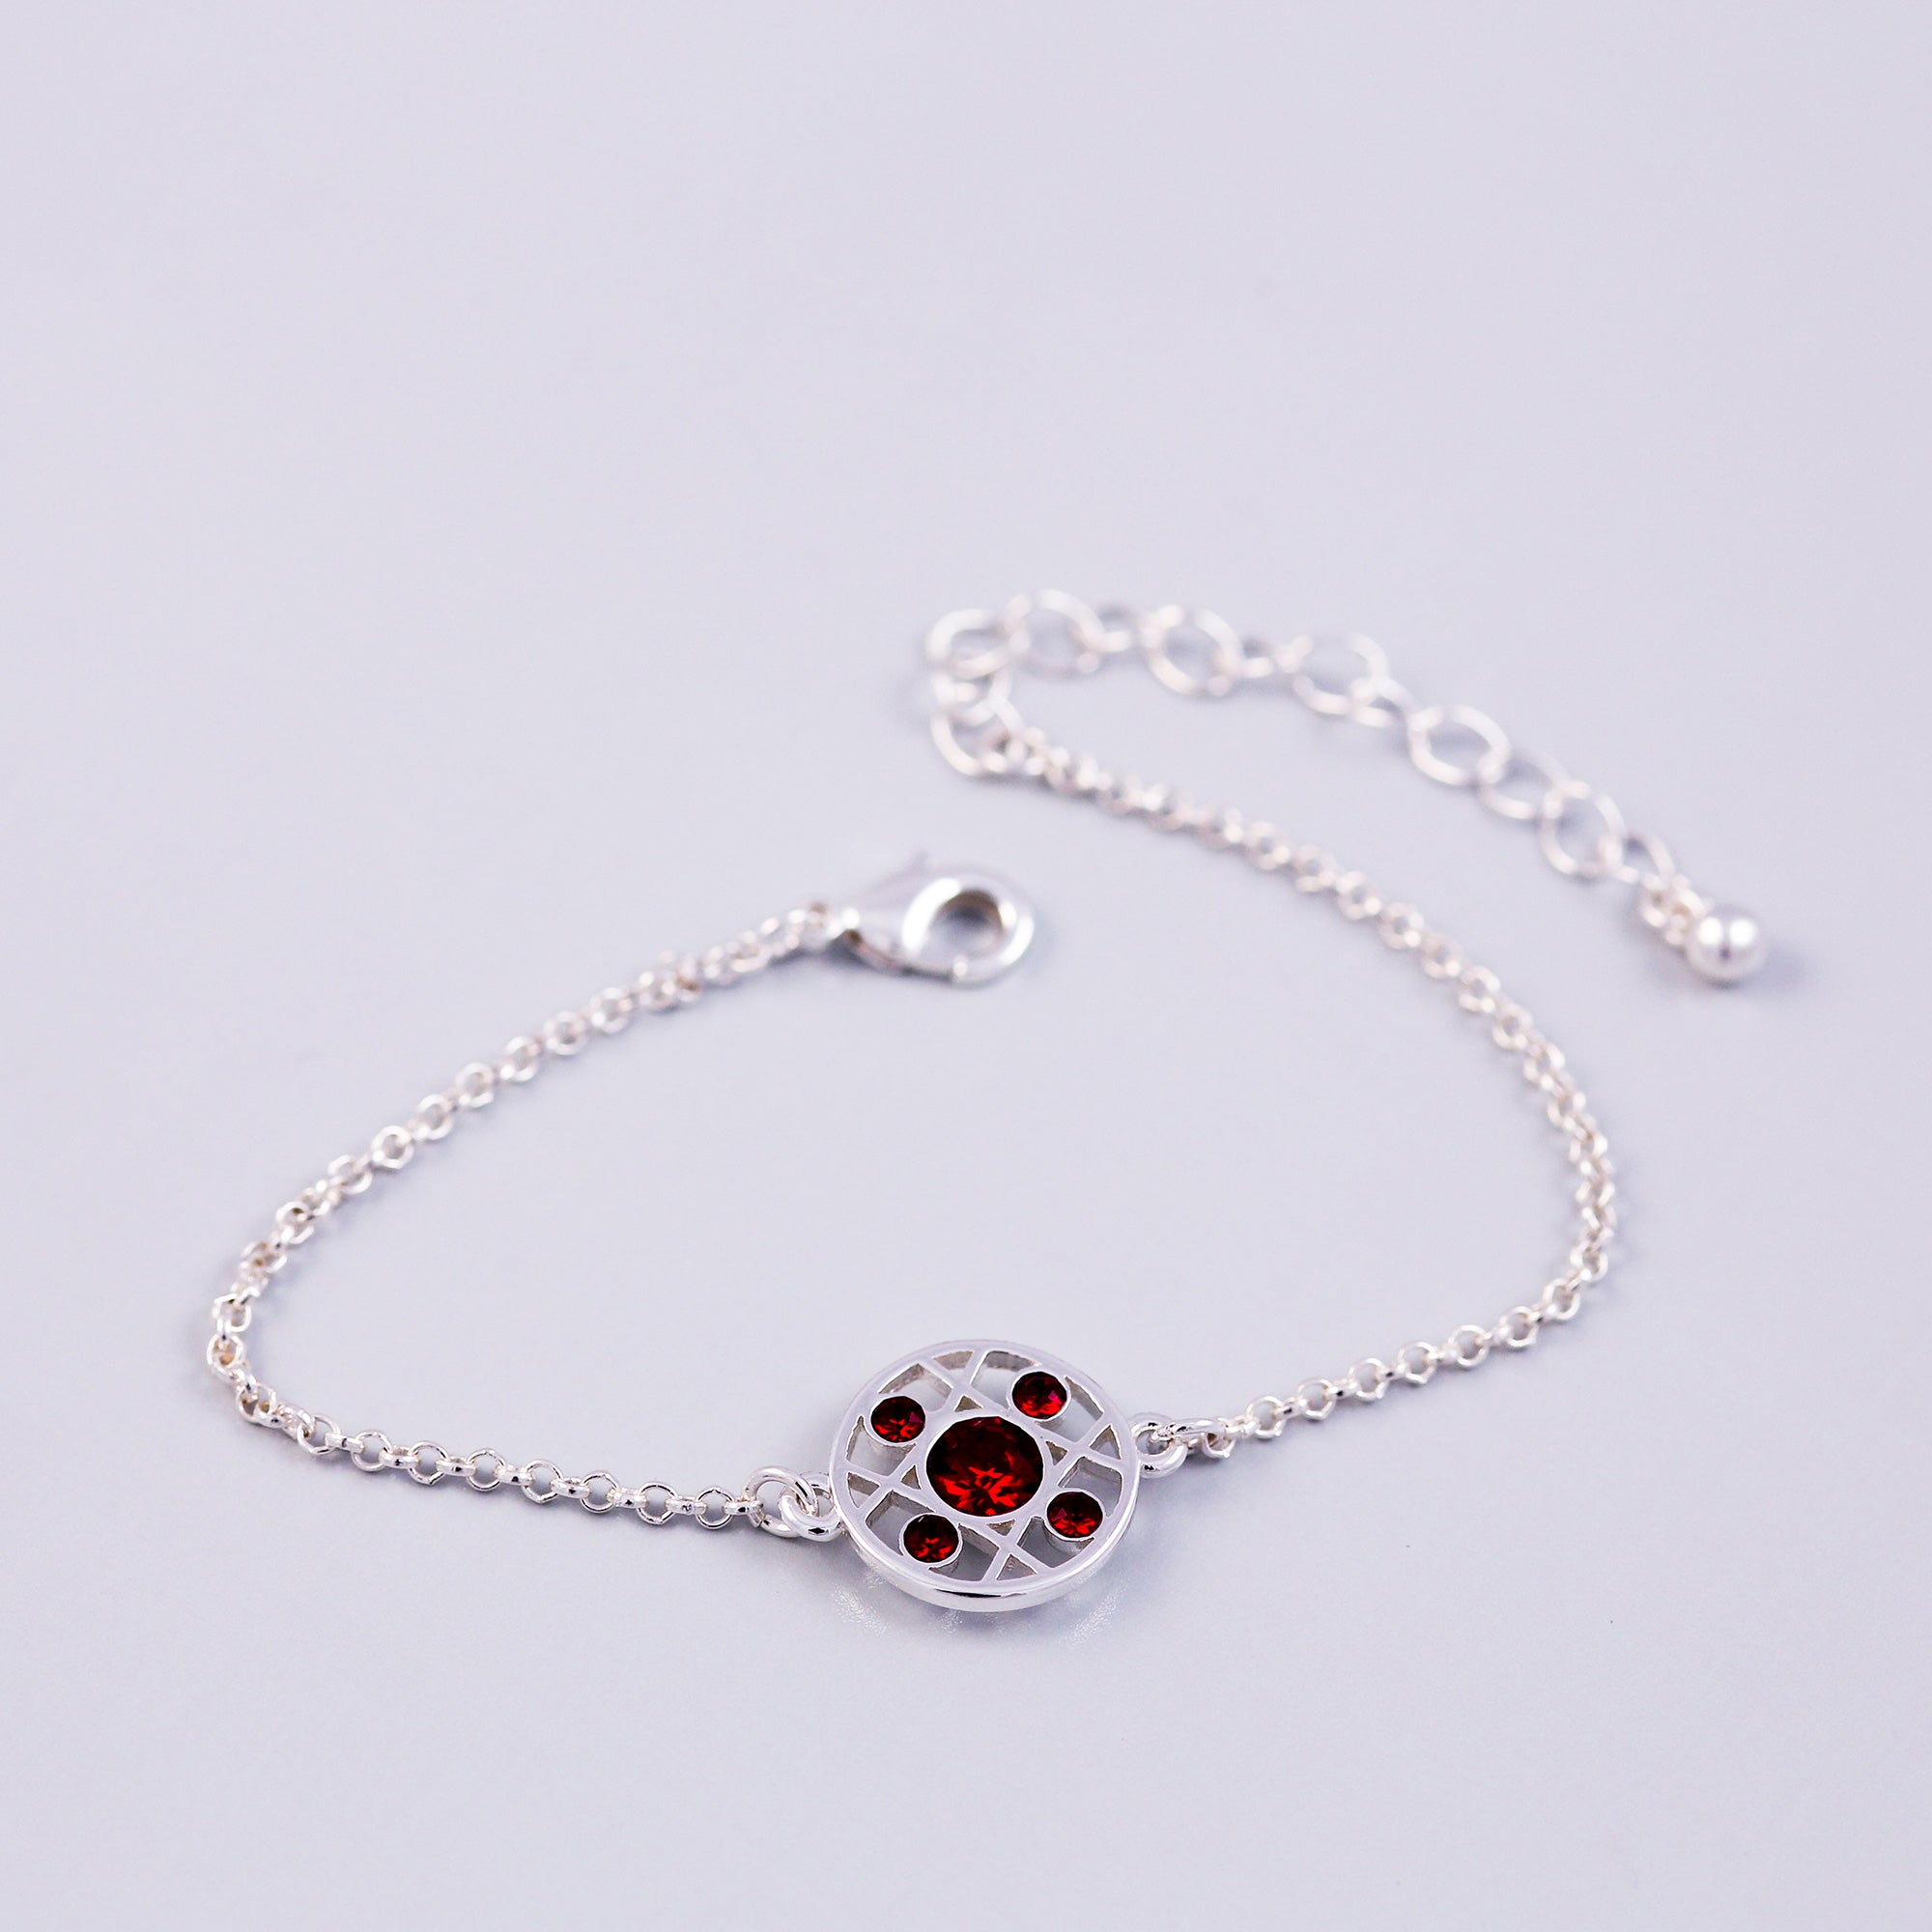 Silver Siam January Birthstone Hugs & Kisses Bracelet